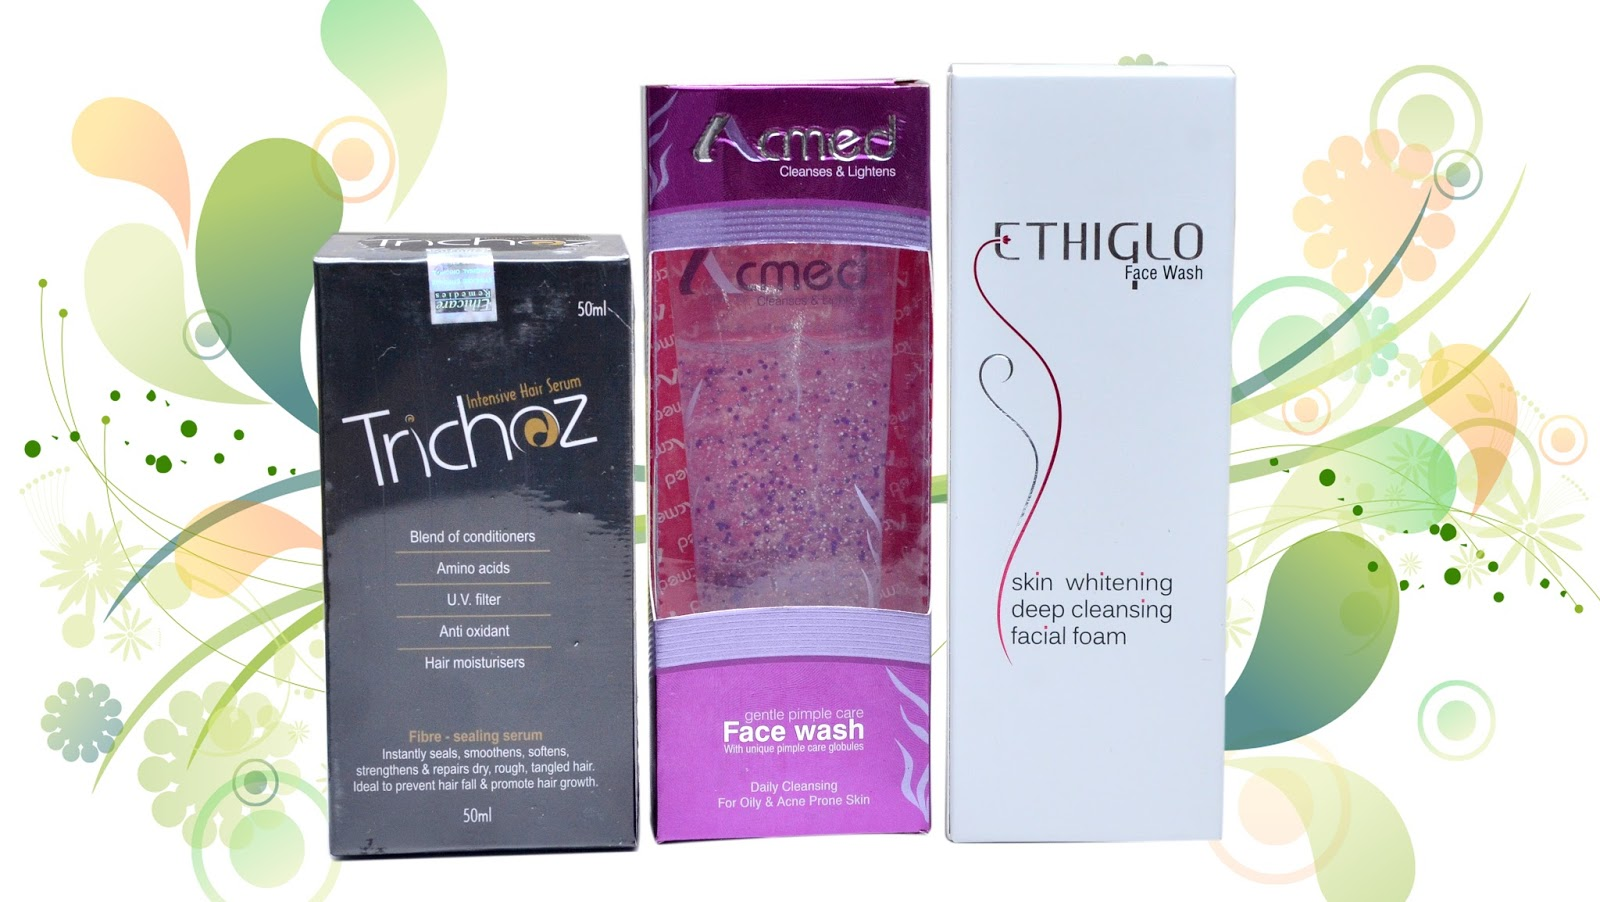 Ethicare Women's Day Giveaway